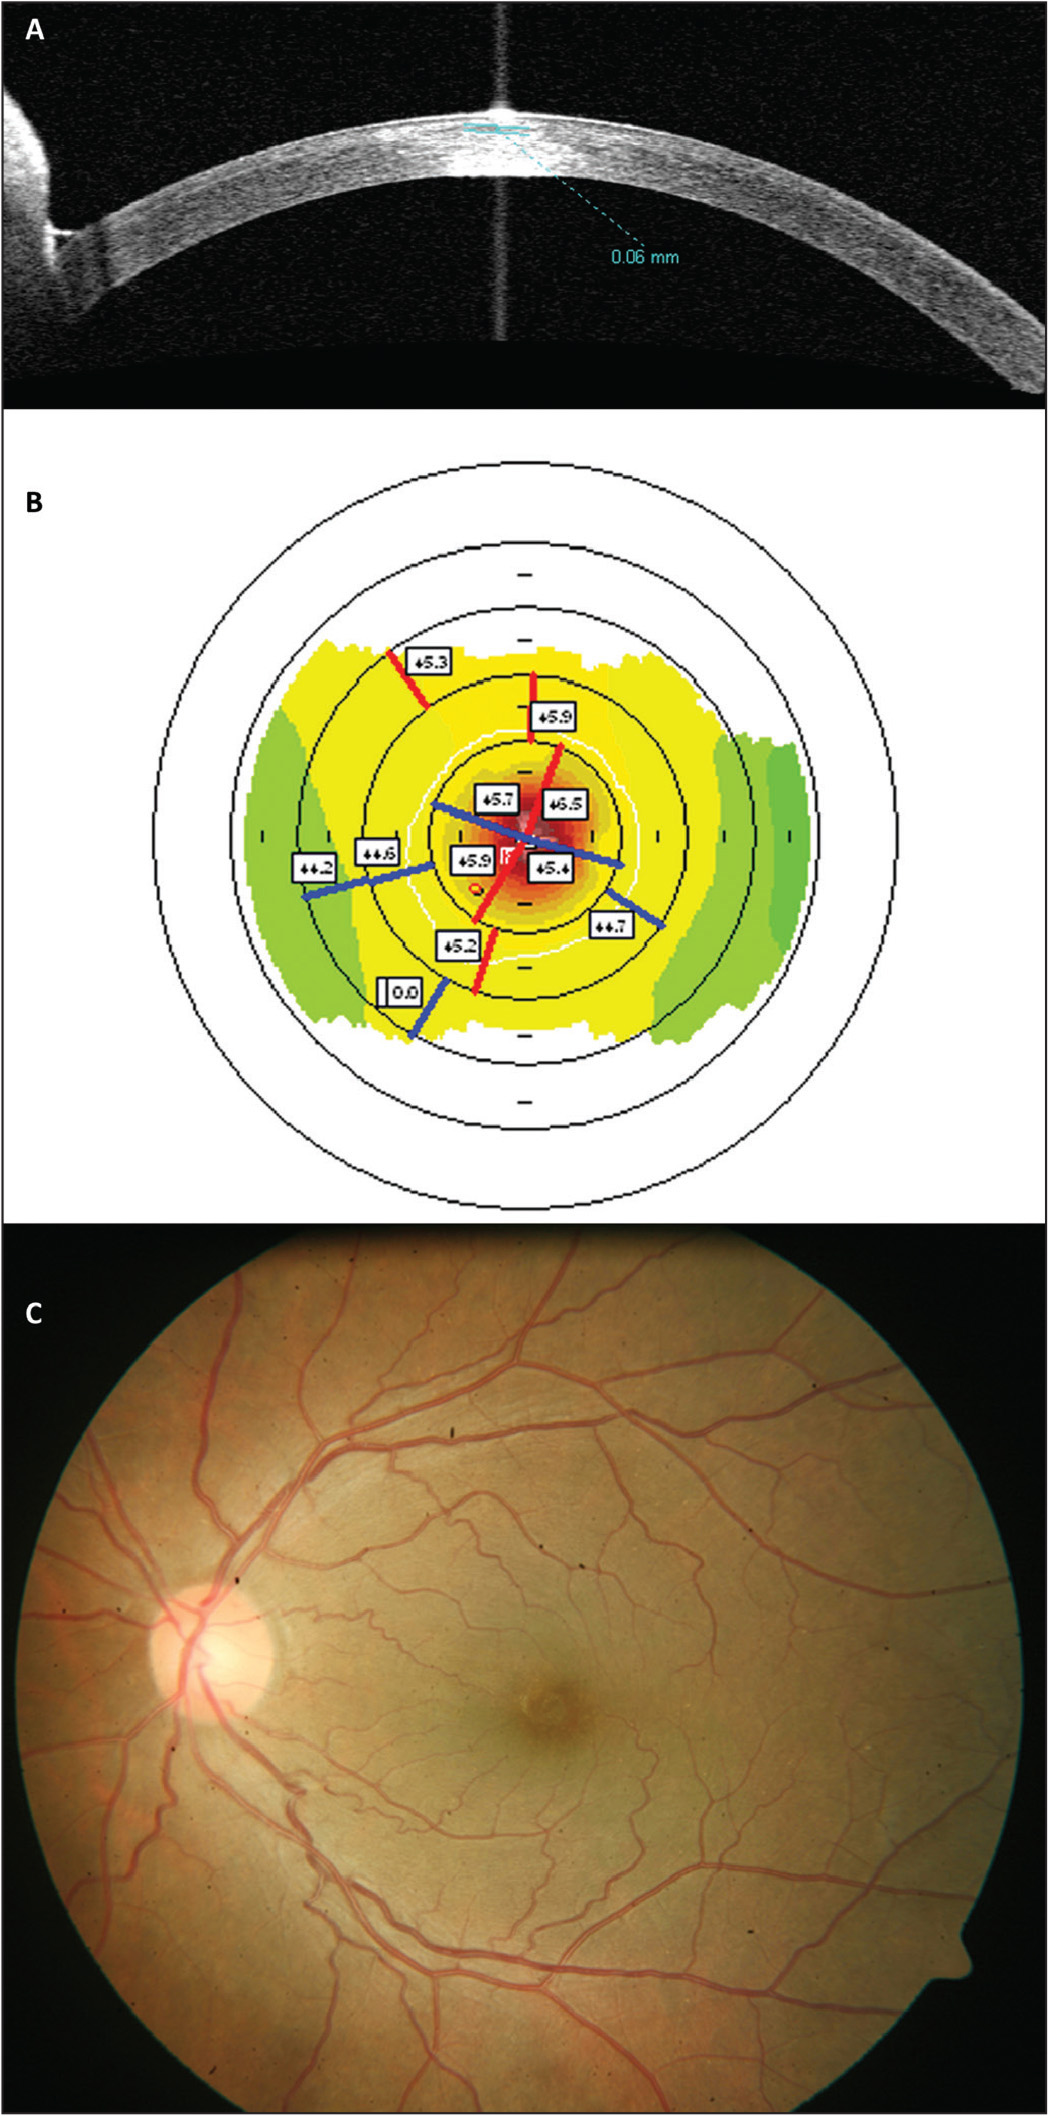 (A) Anterior segment optical coherence tomography showing a well-centered inlay. (B) Corneal topography showing a hyperprolate cornea in the central zone. (C) Fundus imaging through the PrEsbyopic Allogenic Refractive Lenticule (PEARL) inlay.